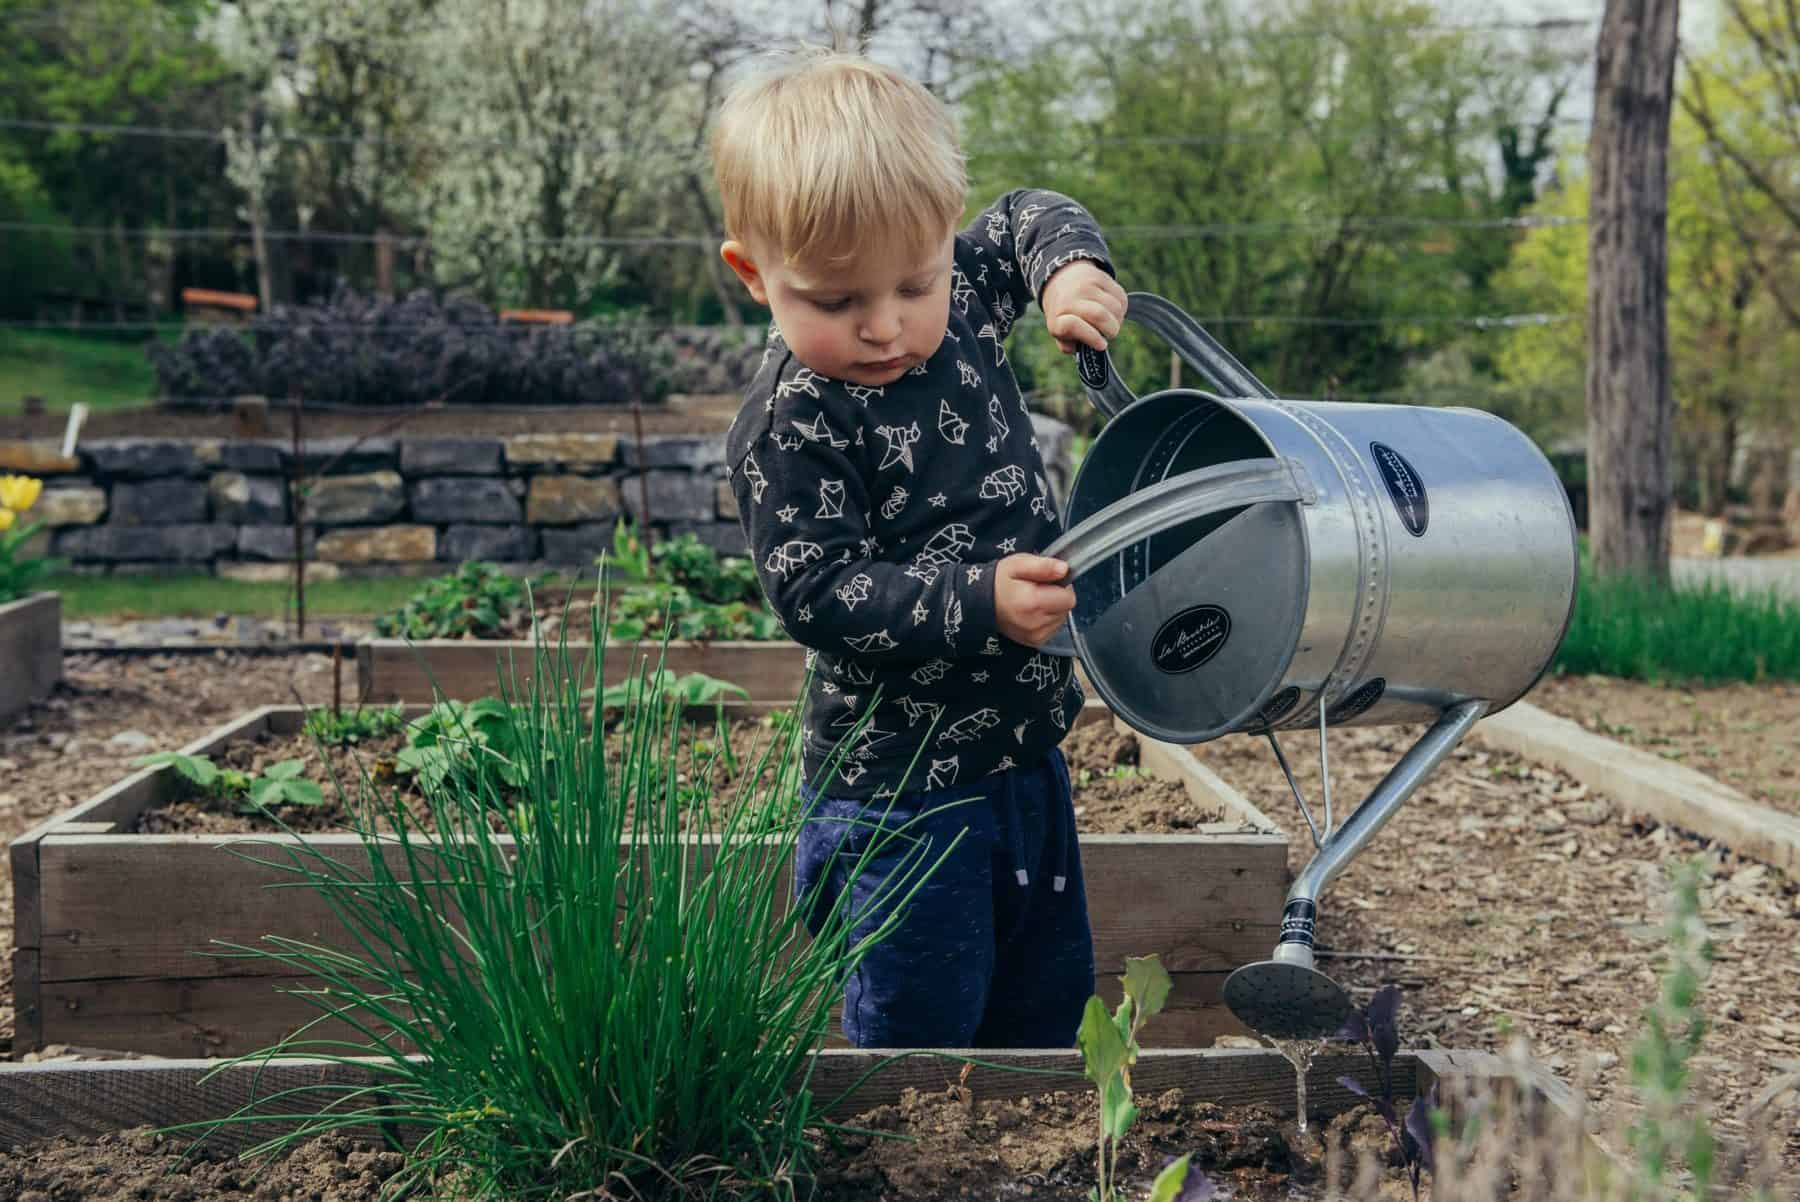 Five things to do in your garden with kids this summer